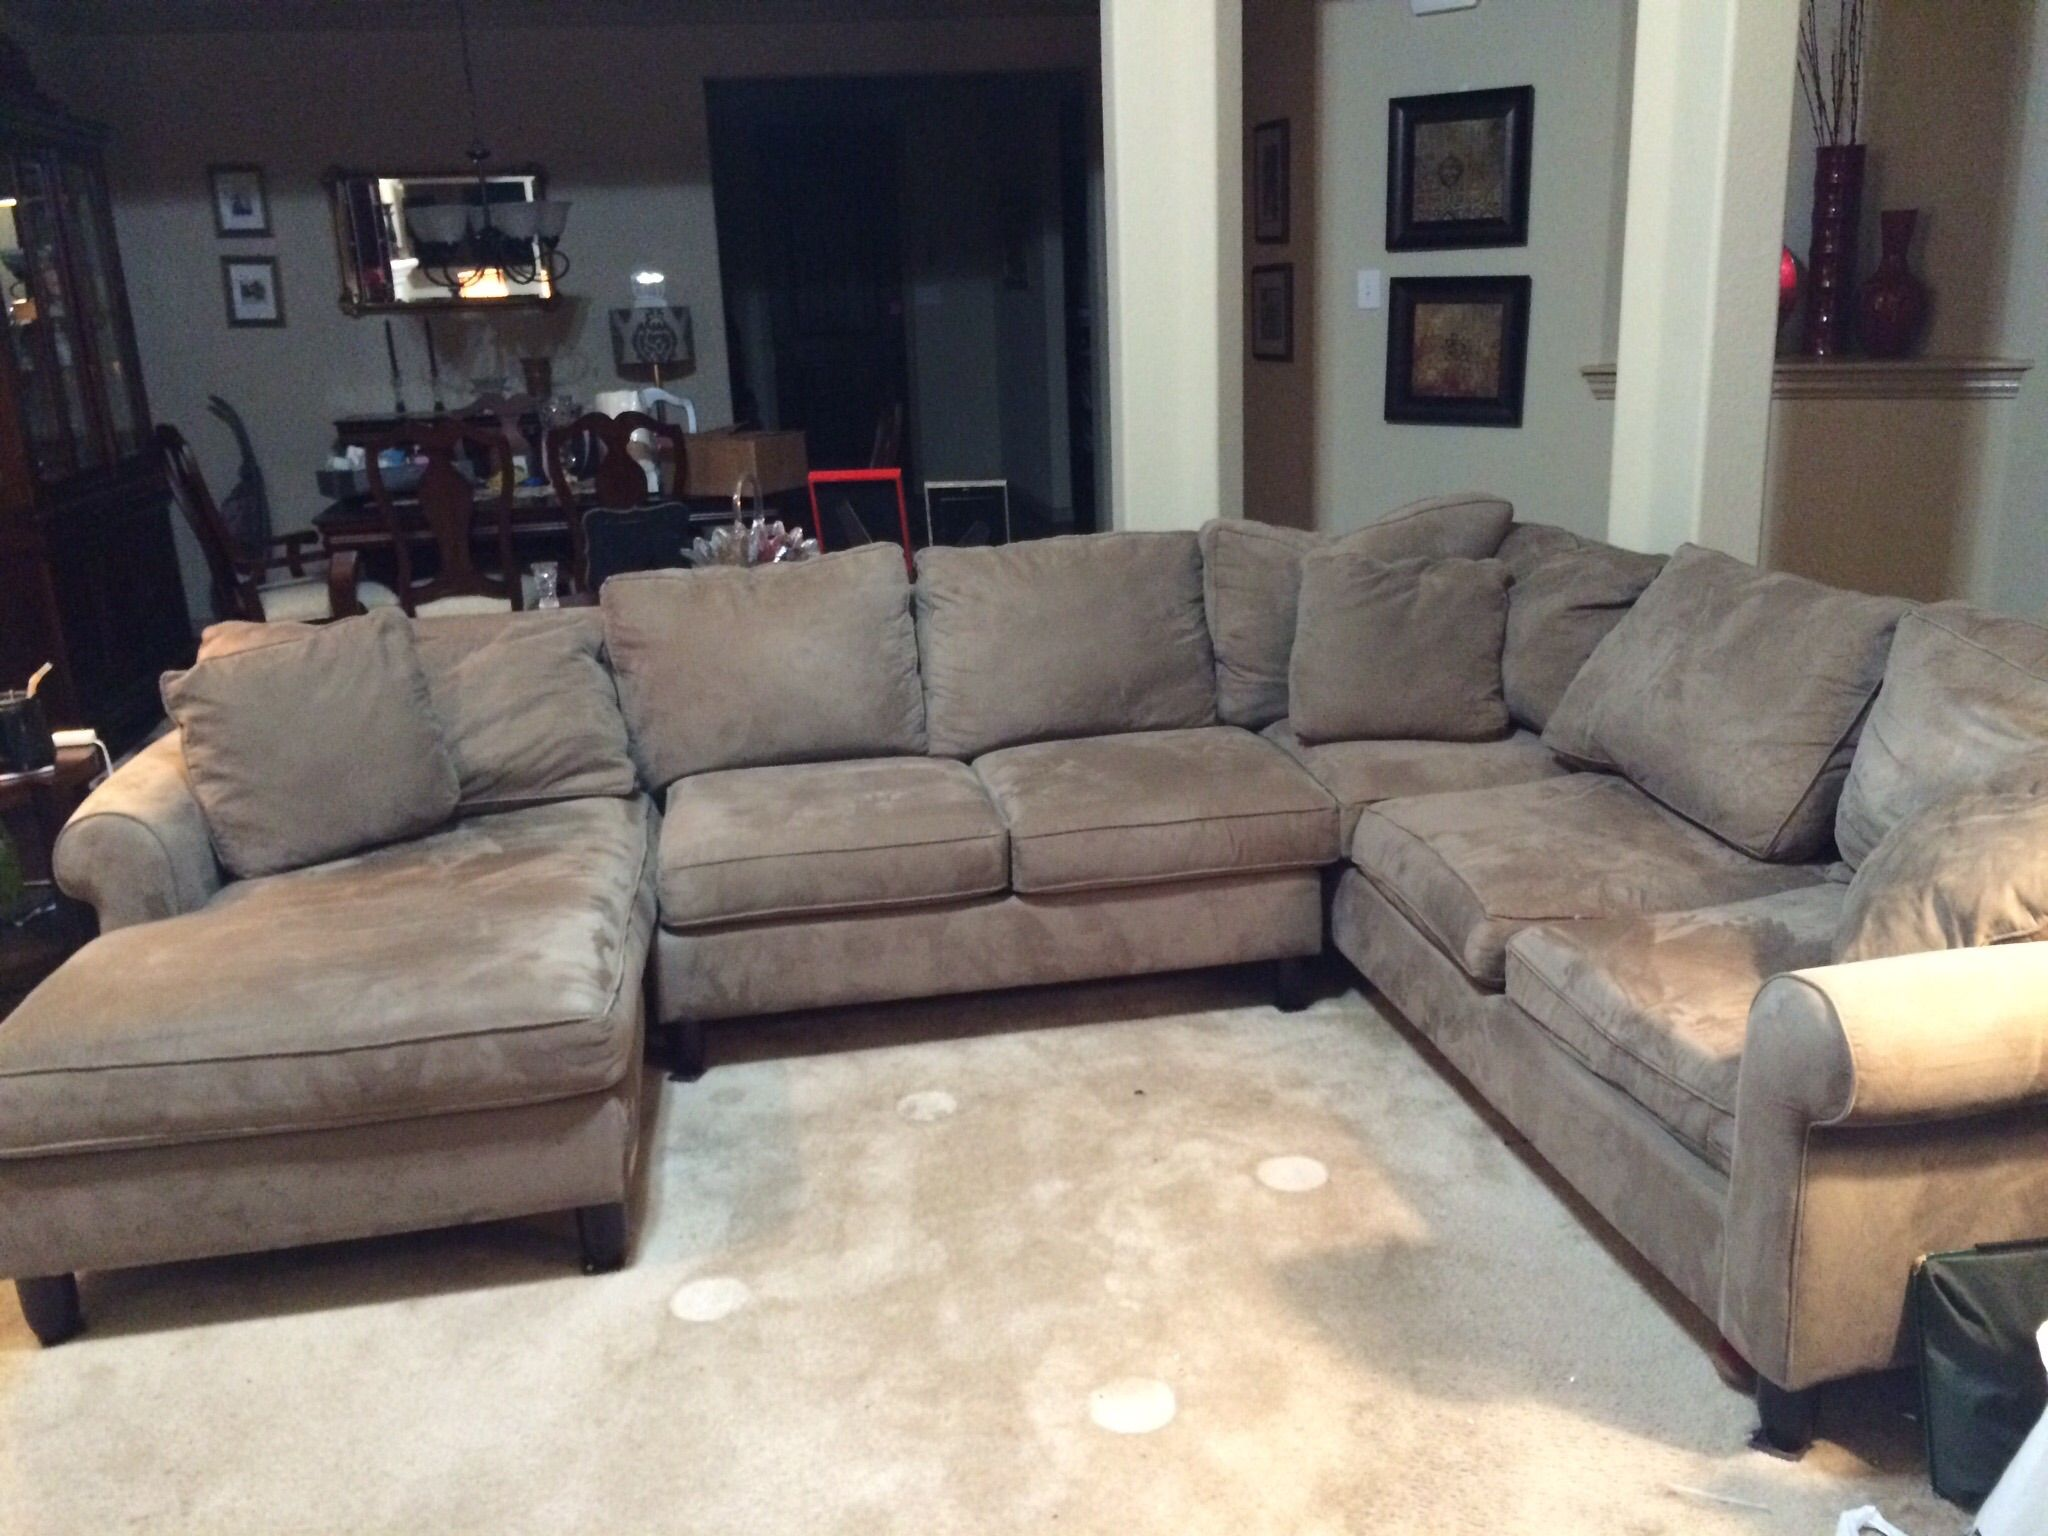 3 Piece Taupe Microfiber Sofa In Sewgirl S Garage Sale Mckinney Tx Home Bar Designs Home Microfiber Sofa